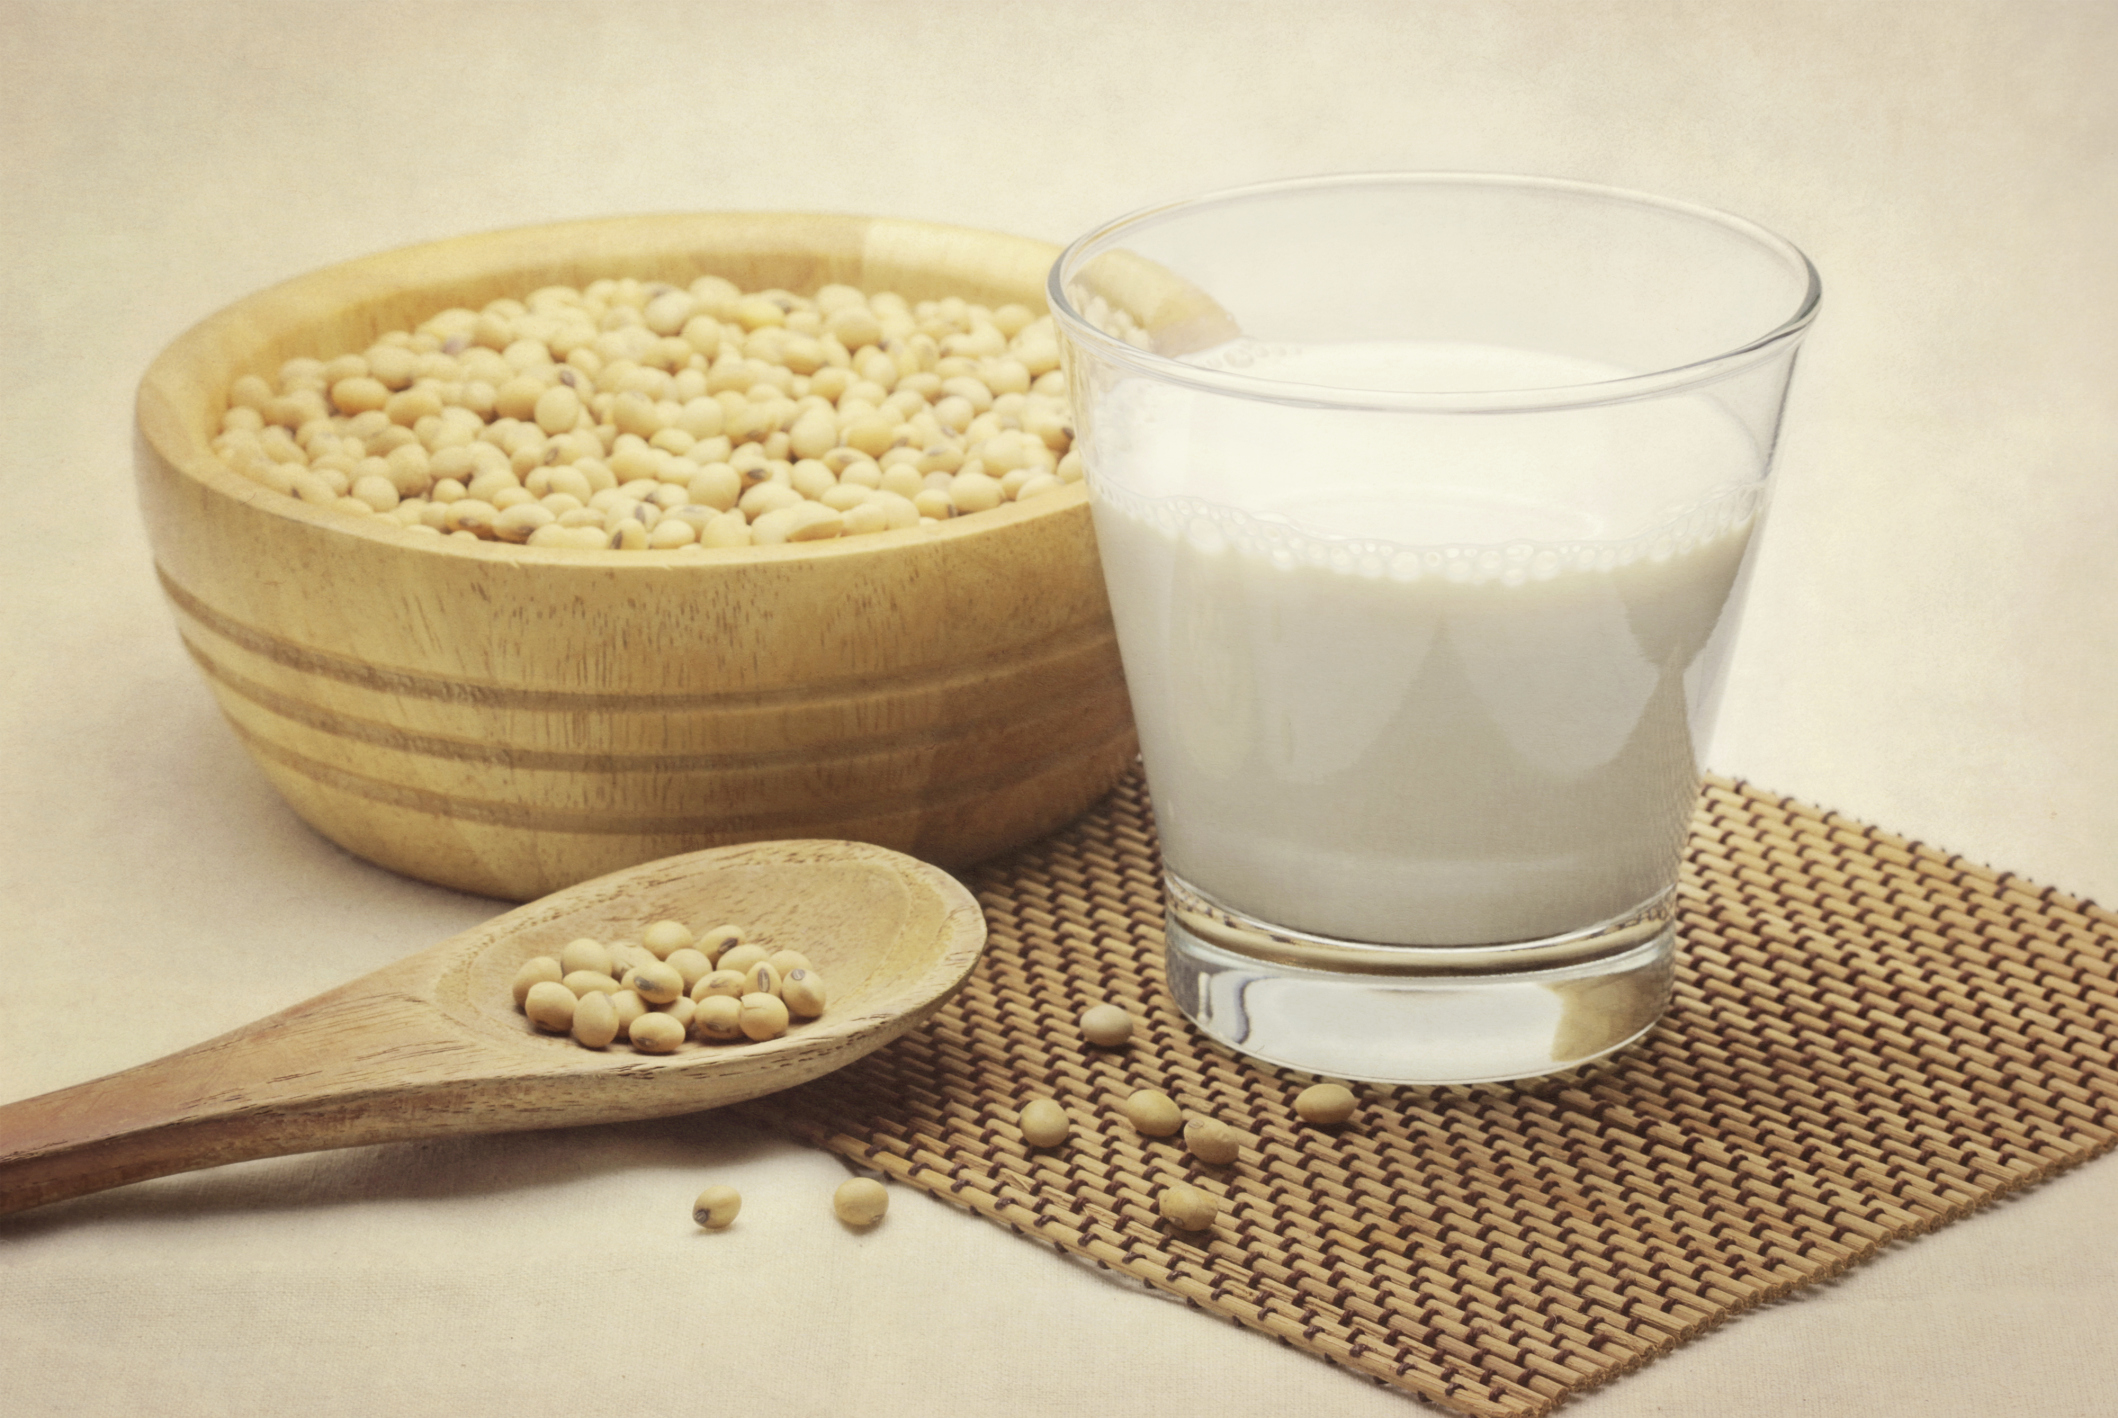 Soy milk: benefit or harm 10